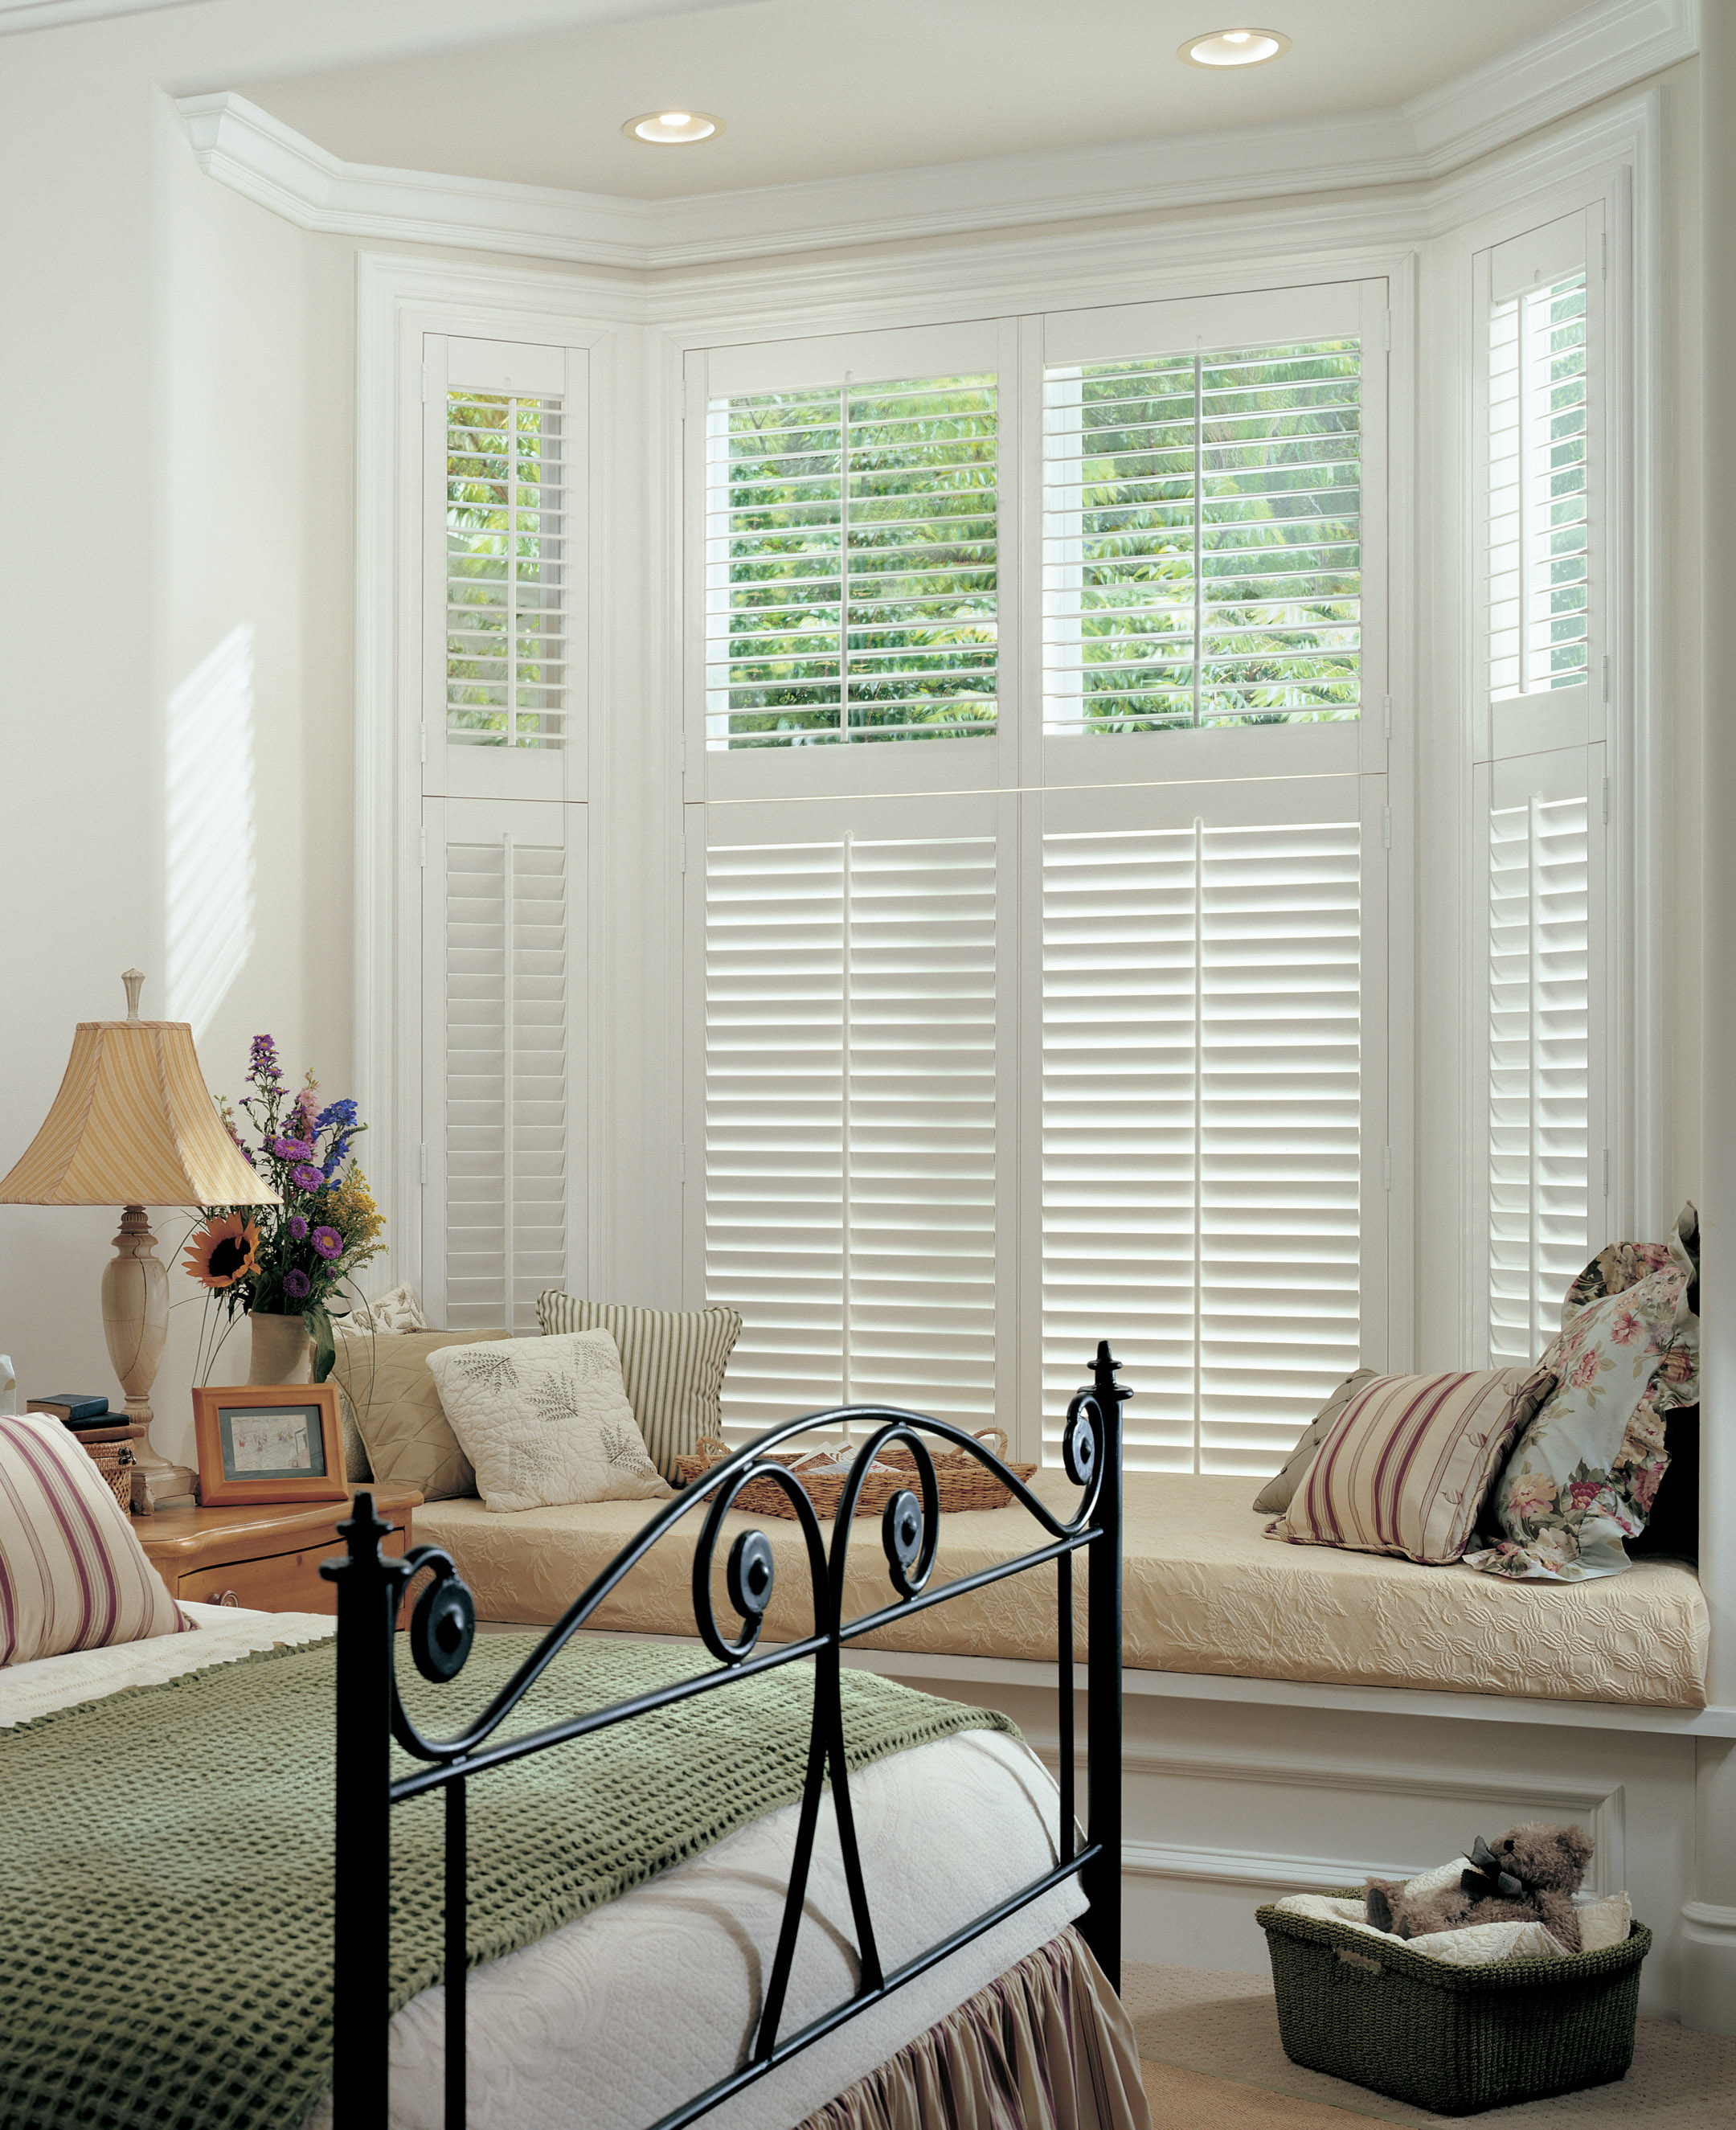 Styles And Ambience Of A Perfect Window Blinds And Shutters